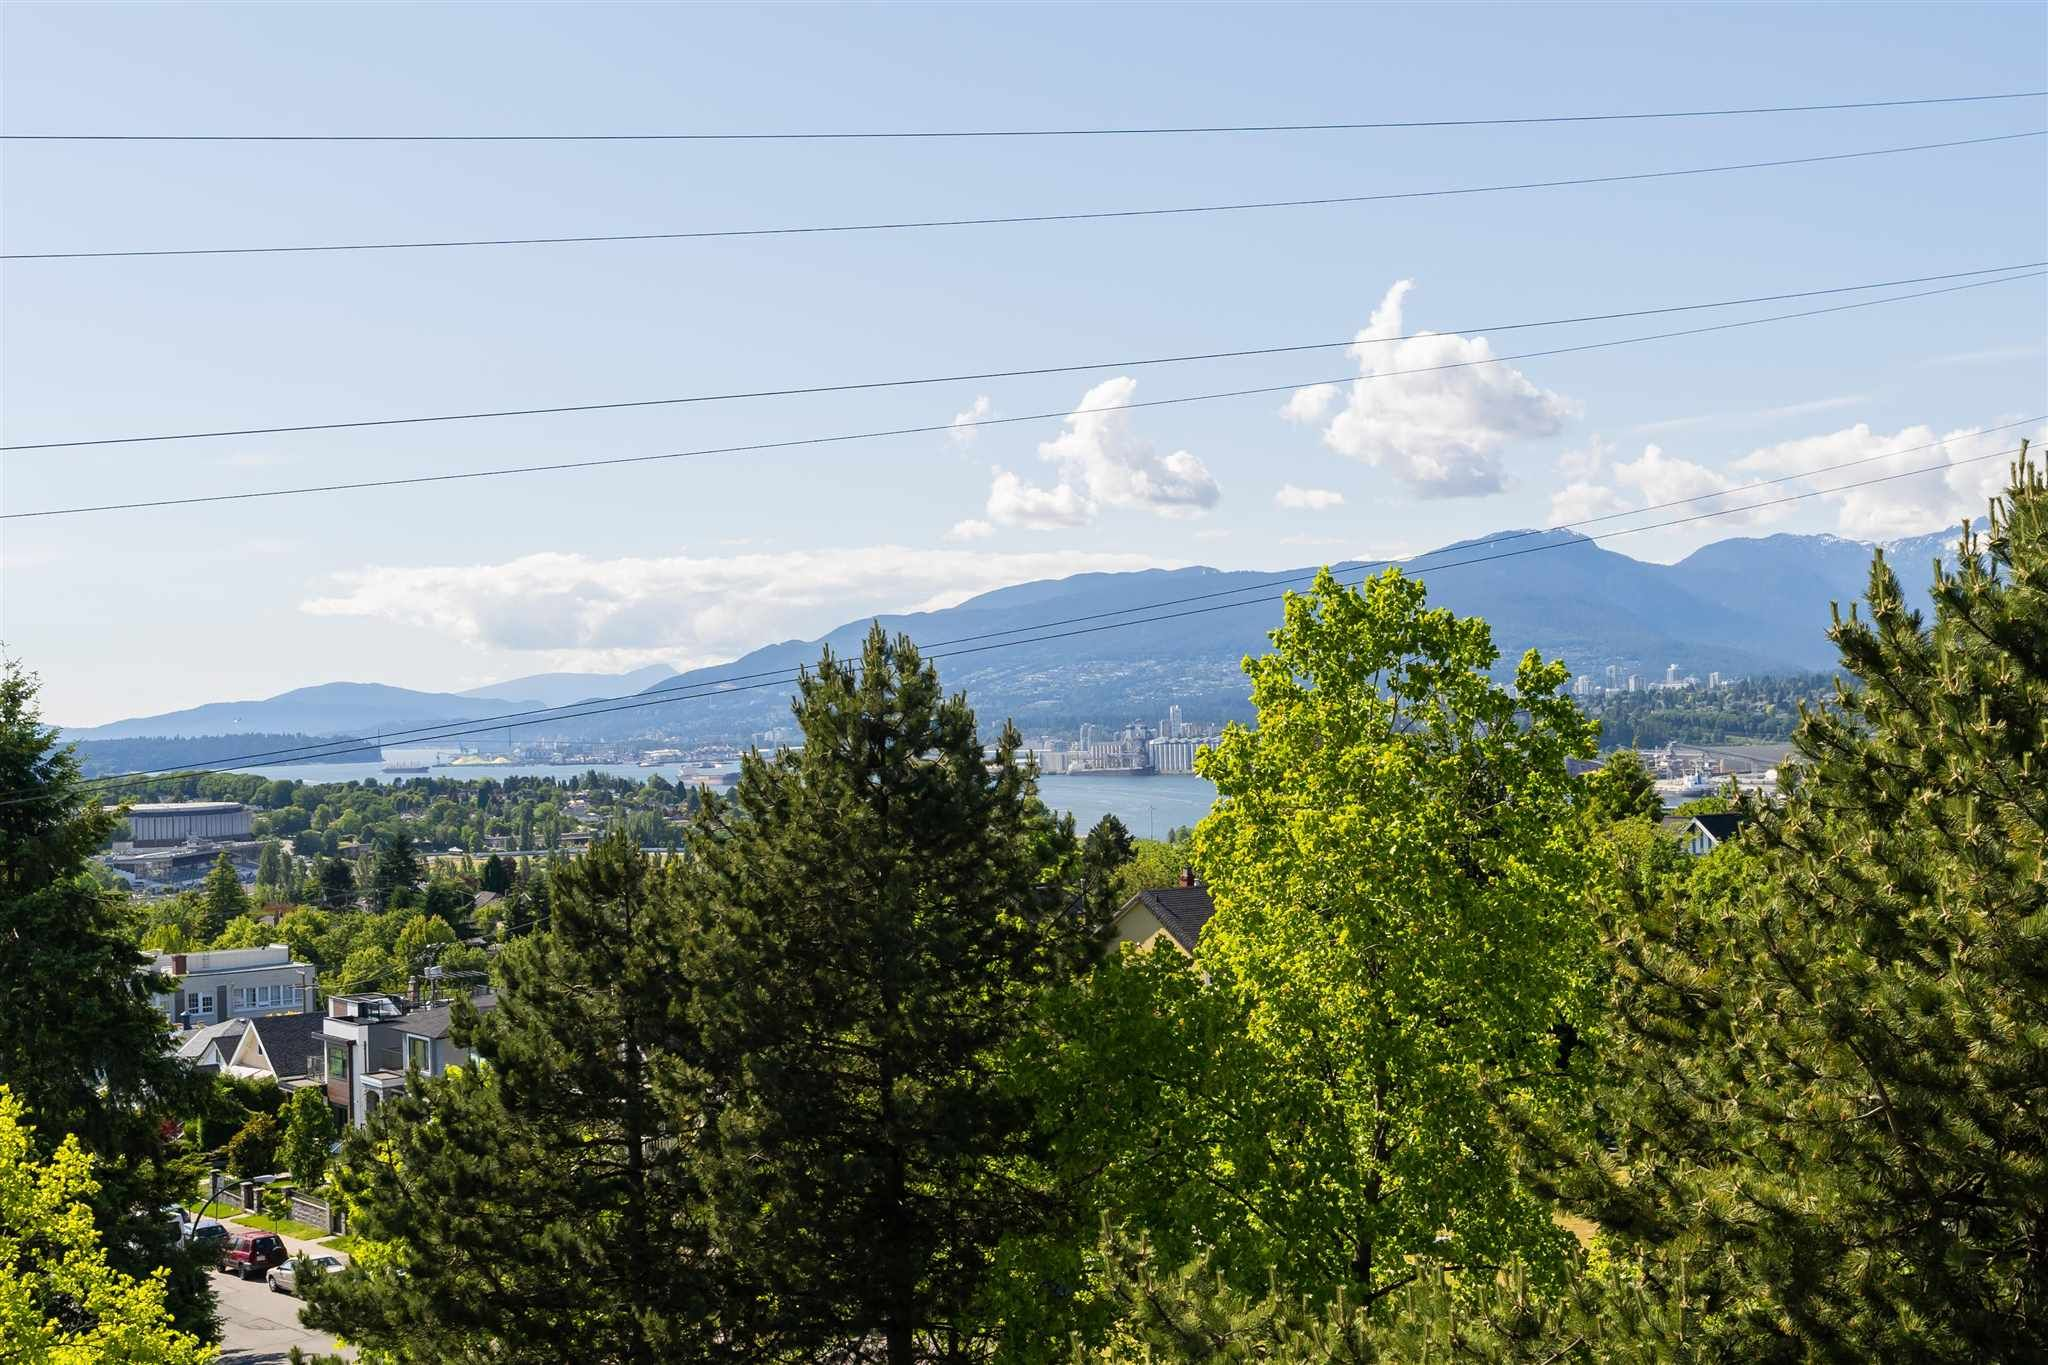 """Main Photo: 602 3740 ALBERT Street in Burnaby: Vancouver Heights Condo for sale in """"BOUNDARY VIEW"""" (Burnaby North)  : MLS®# R2594909"""